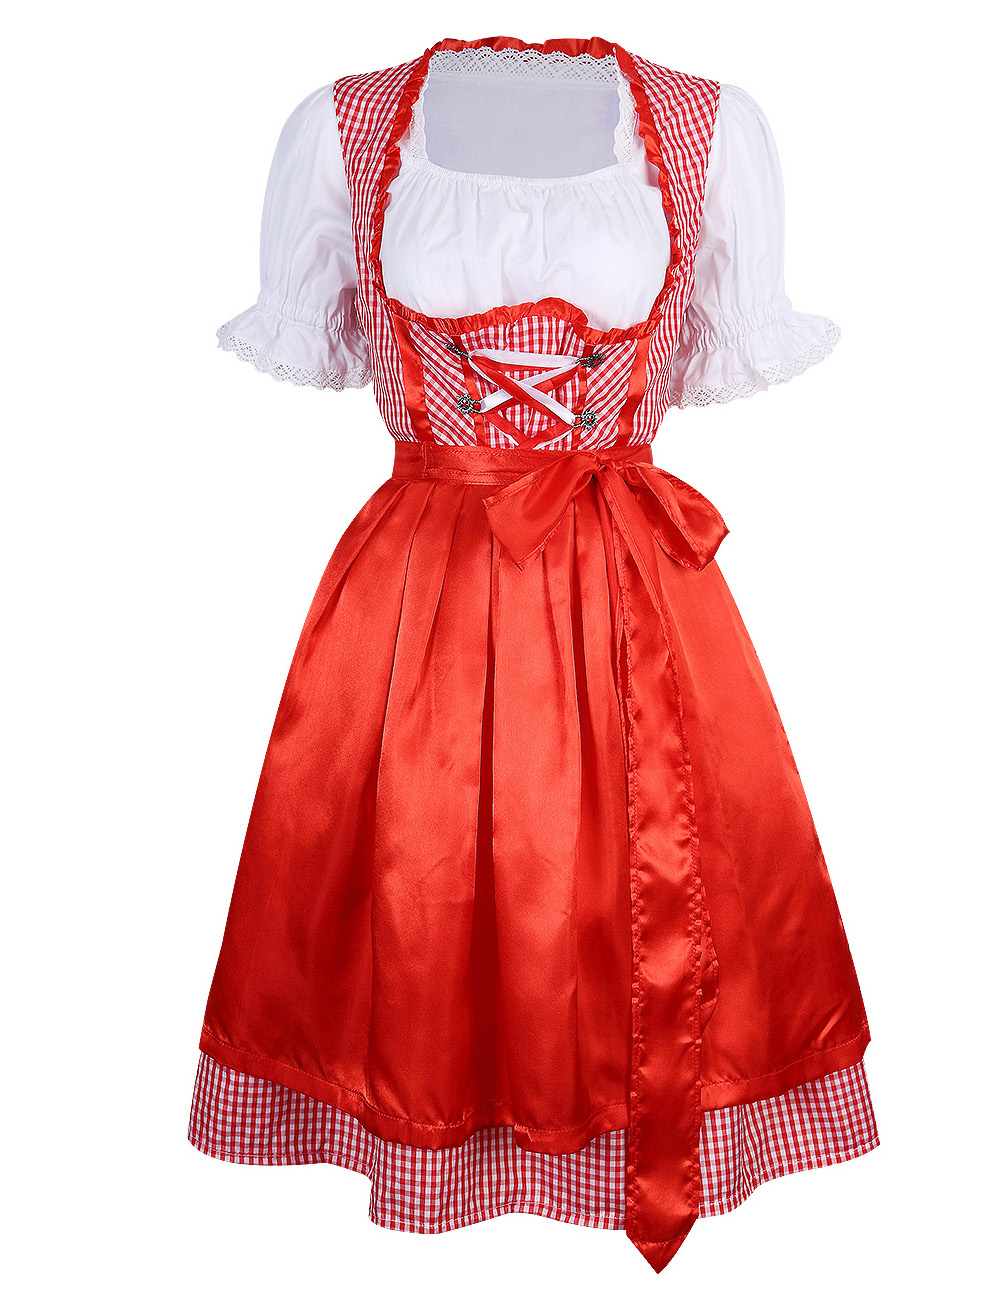 how to make a dirndl costume